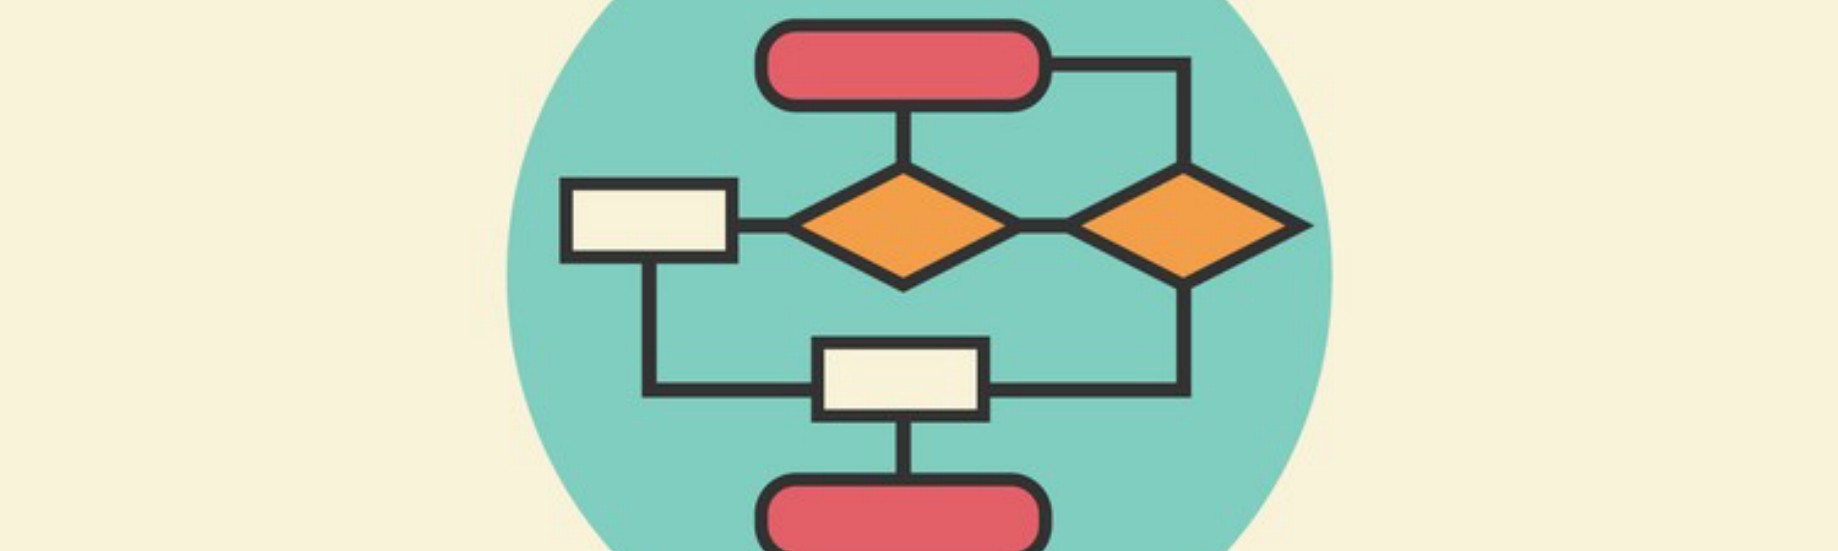 Road to become a Python Ninja — Data Structures - Noteworthy - The